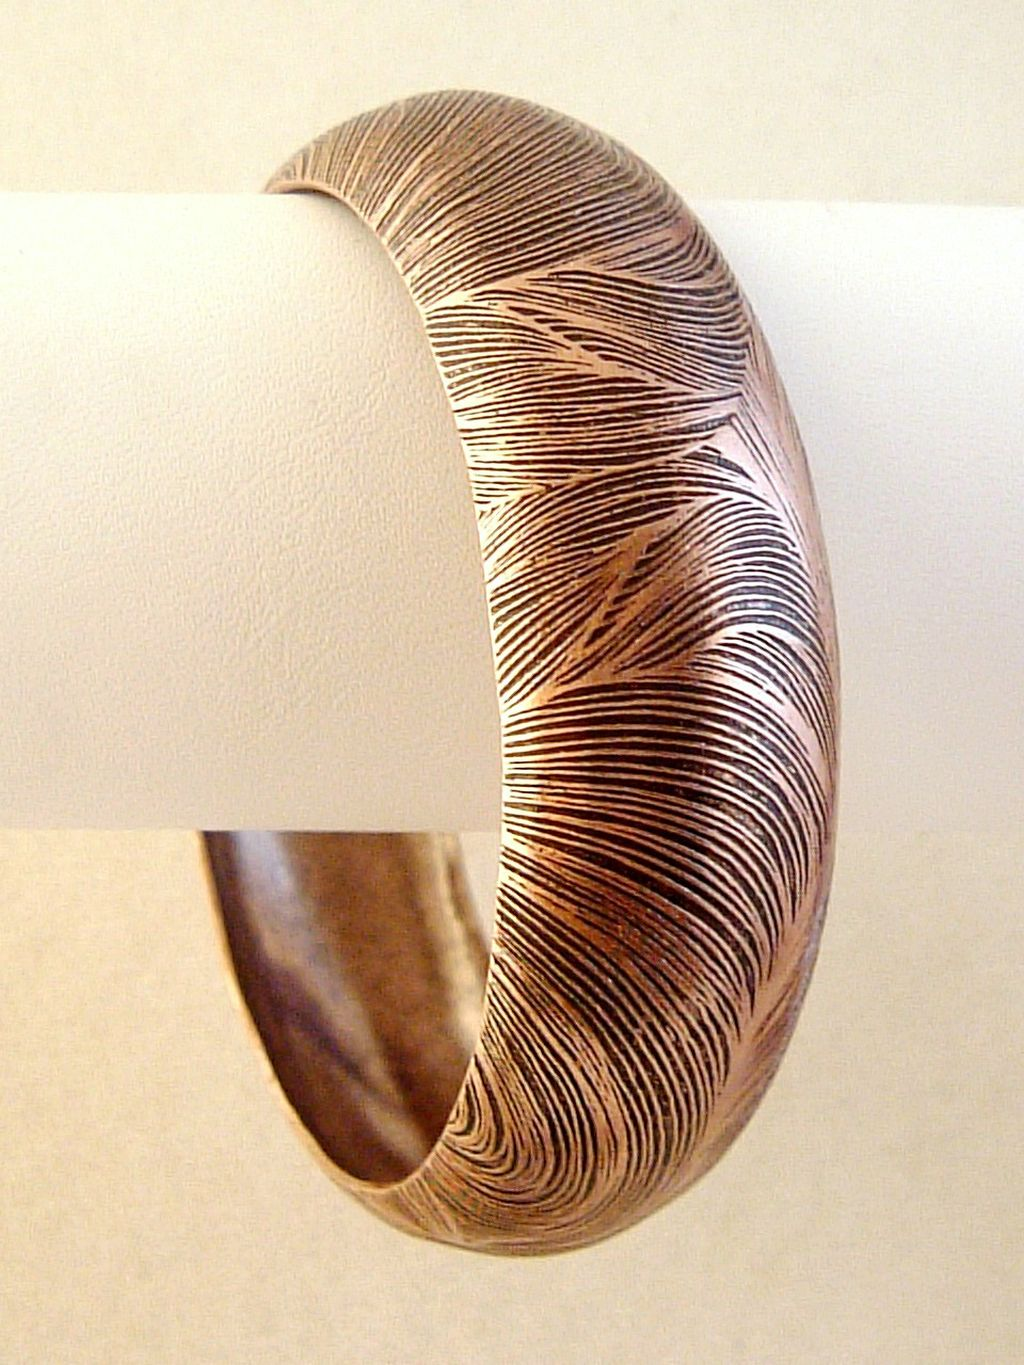 Vintage Style, Bulky Bangle Bracelet w/ Ornament, Copper Finish Metal, Anti-allergic Jewelry